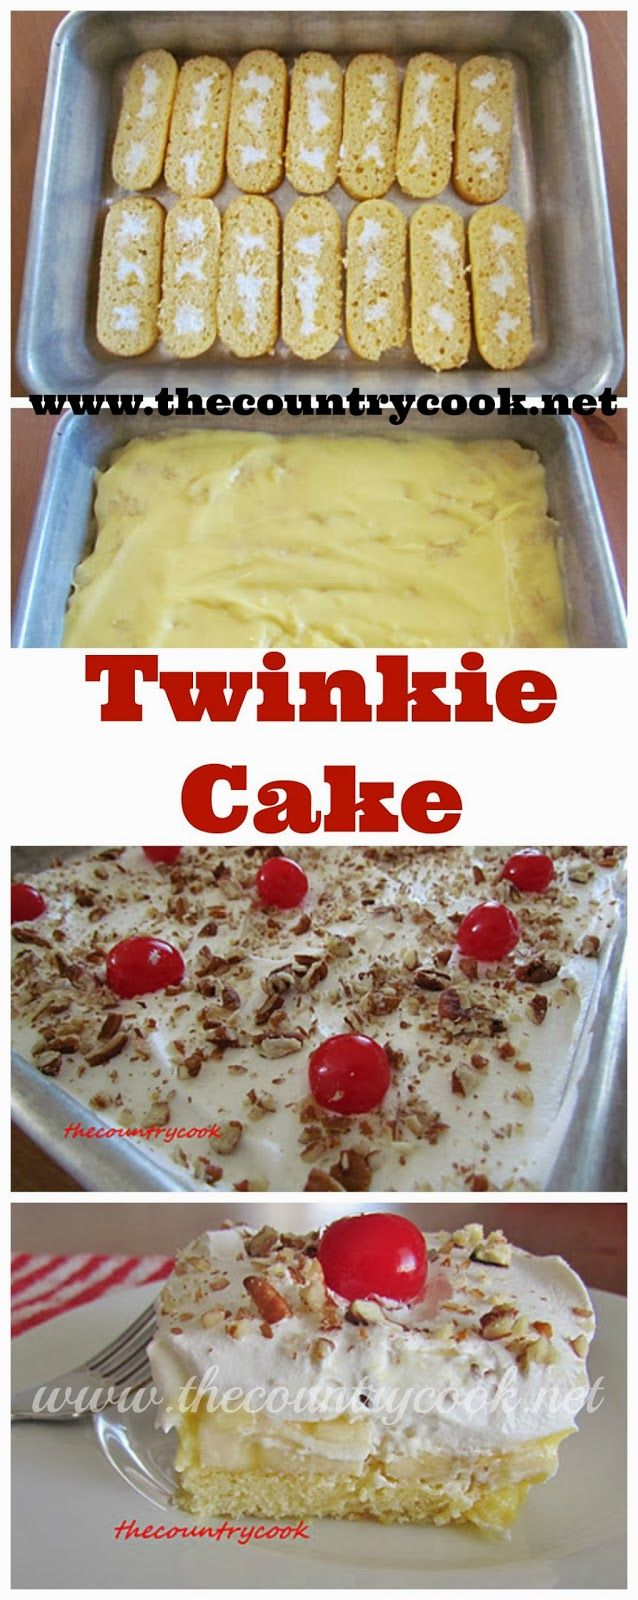 Twinkie Cake recipe from The Country Cook. A super fun, no-bake dessert that everyone loves. It's a little indulgent but the kids and adults LOVE it! #desserts